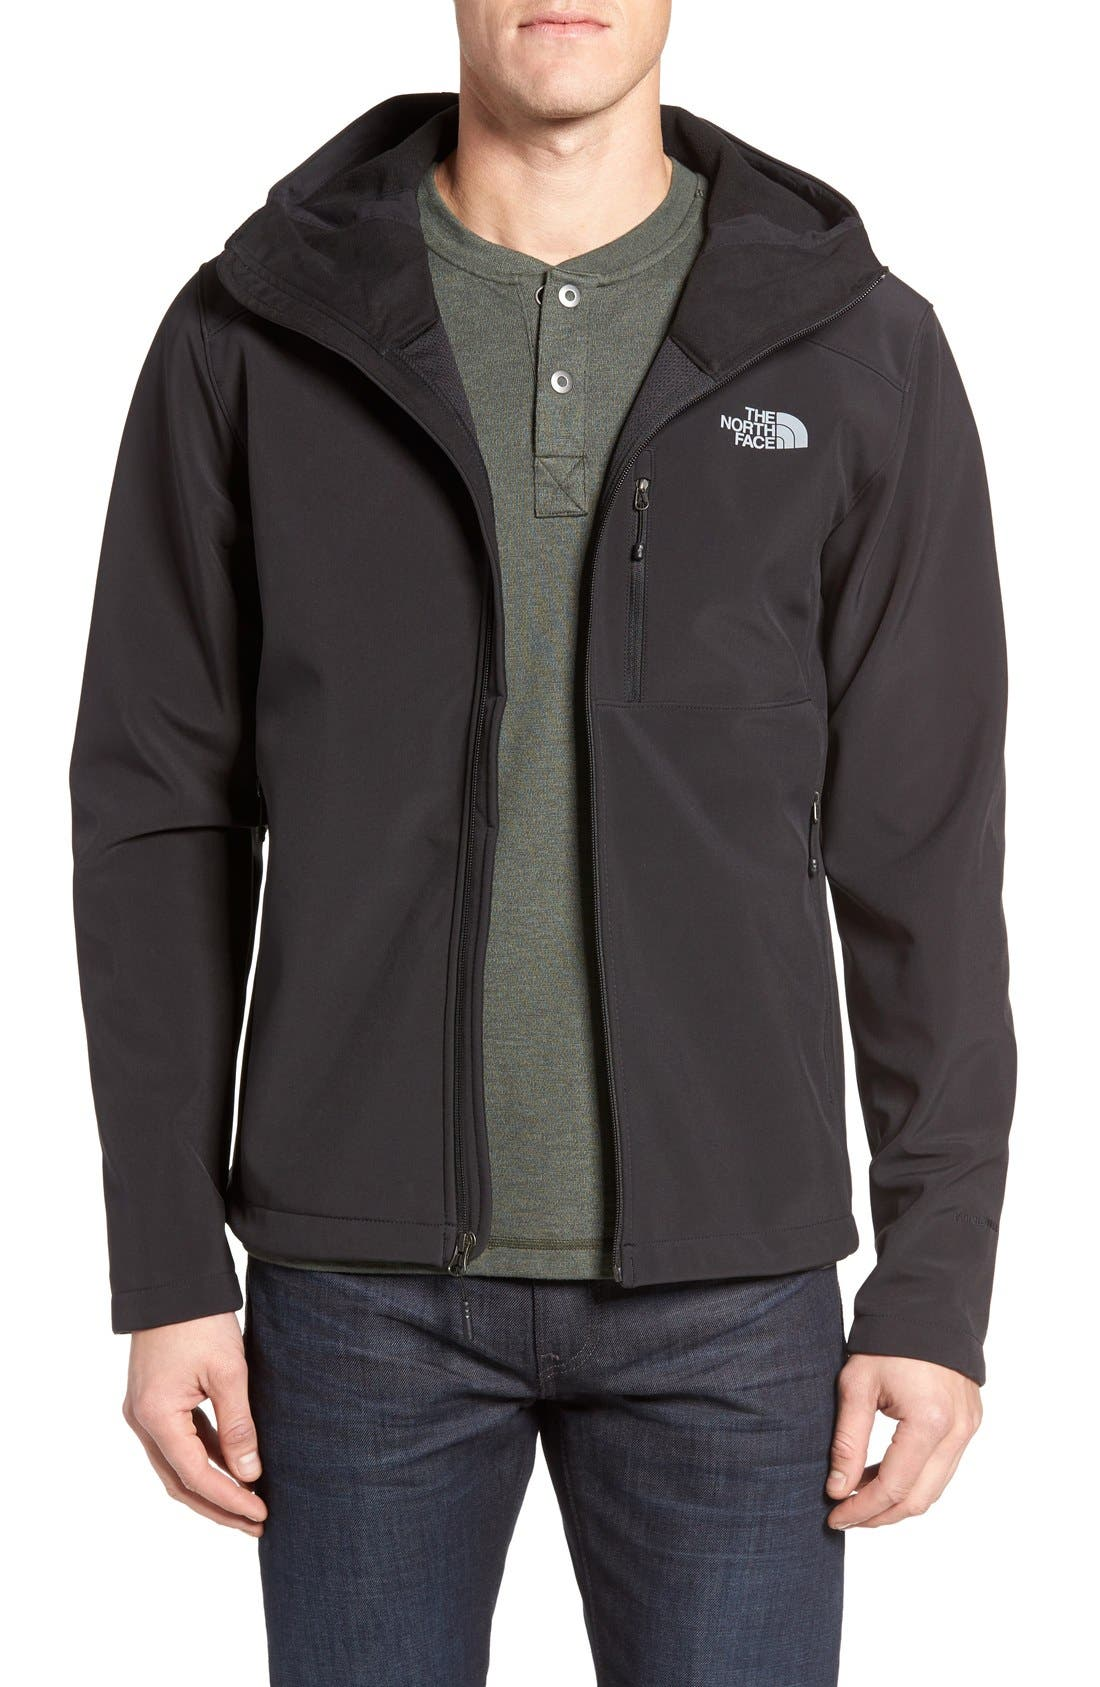 Alternate Image 1 Selected - The North Face 'Apex Bionic 2' Water Repellent Jacket